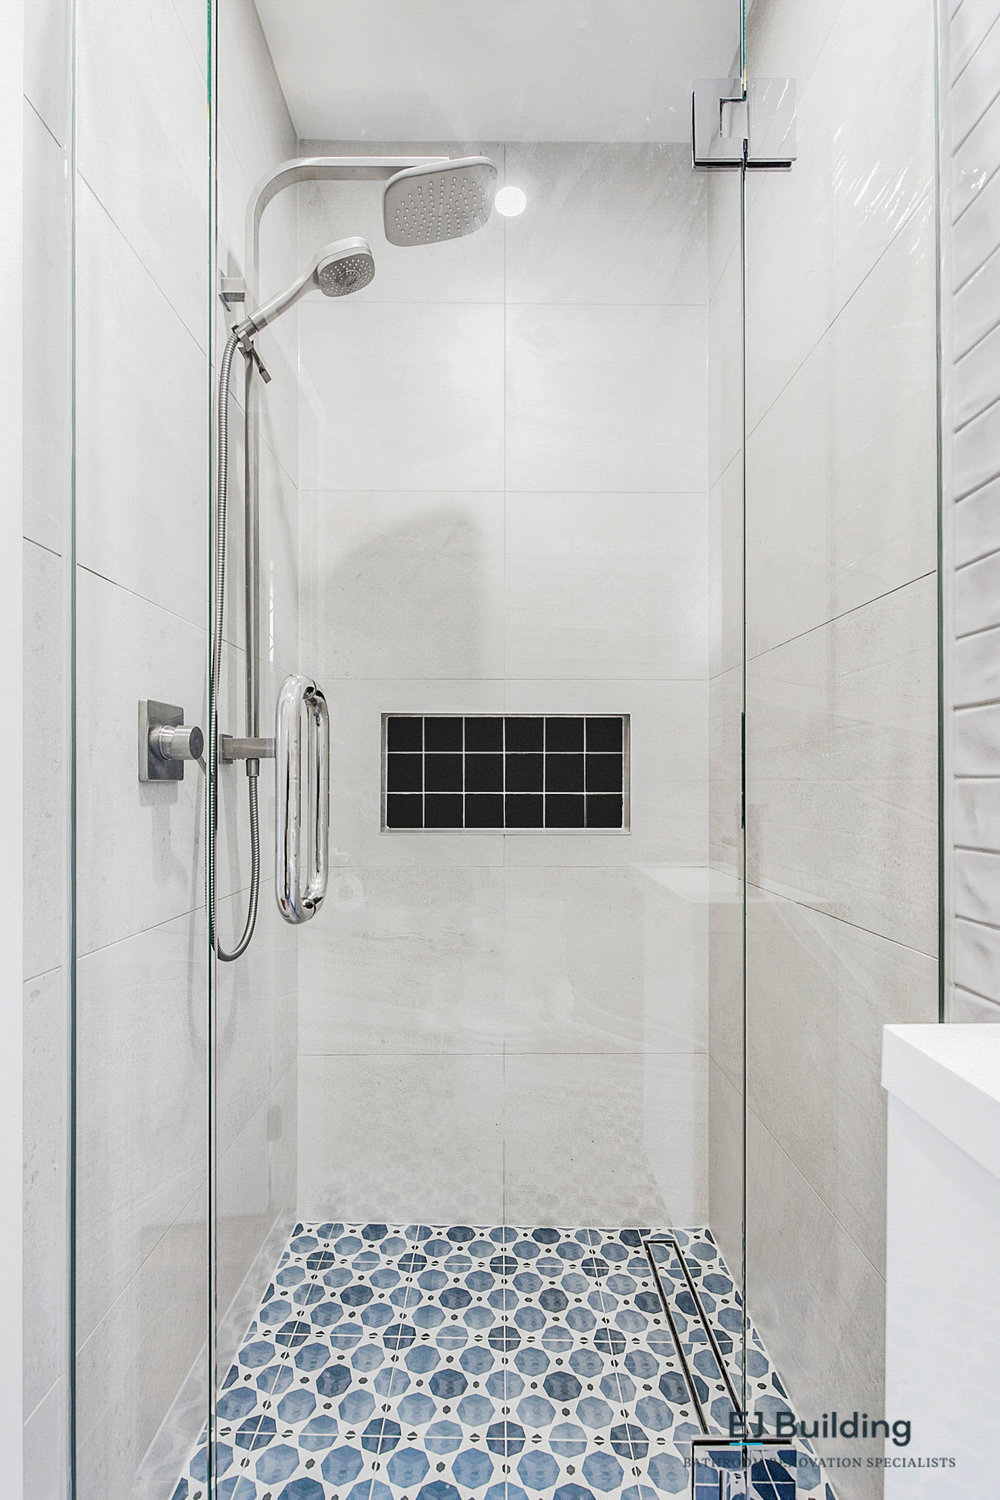 Bathroom classic design with tile channel / slot drain.